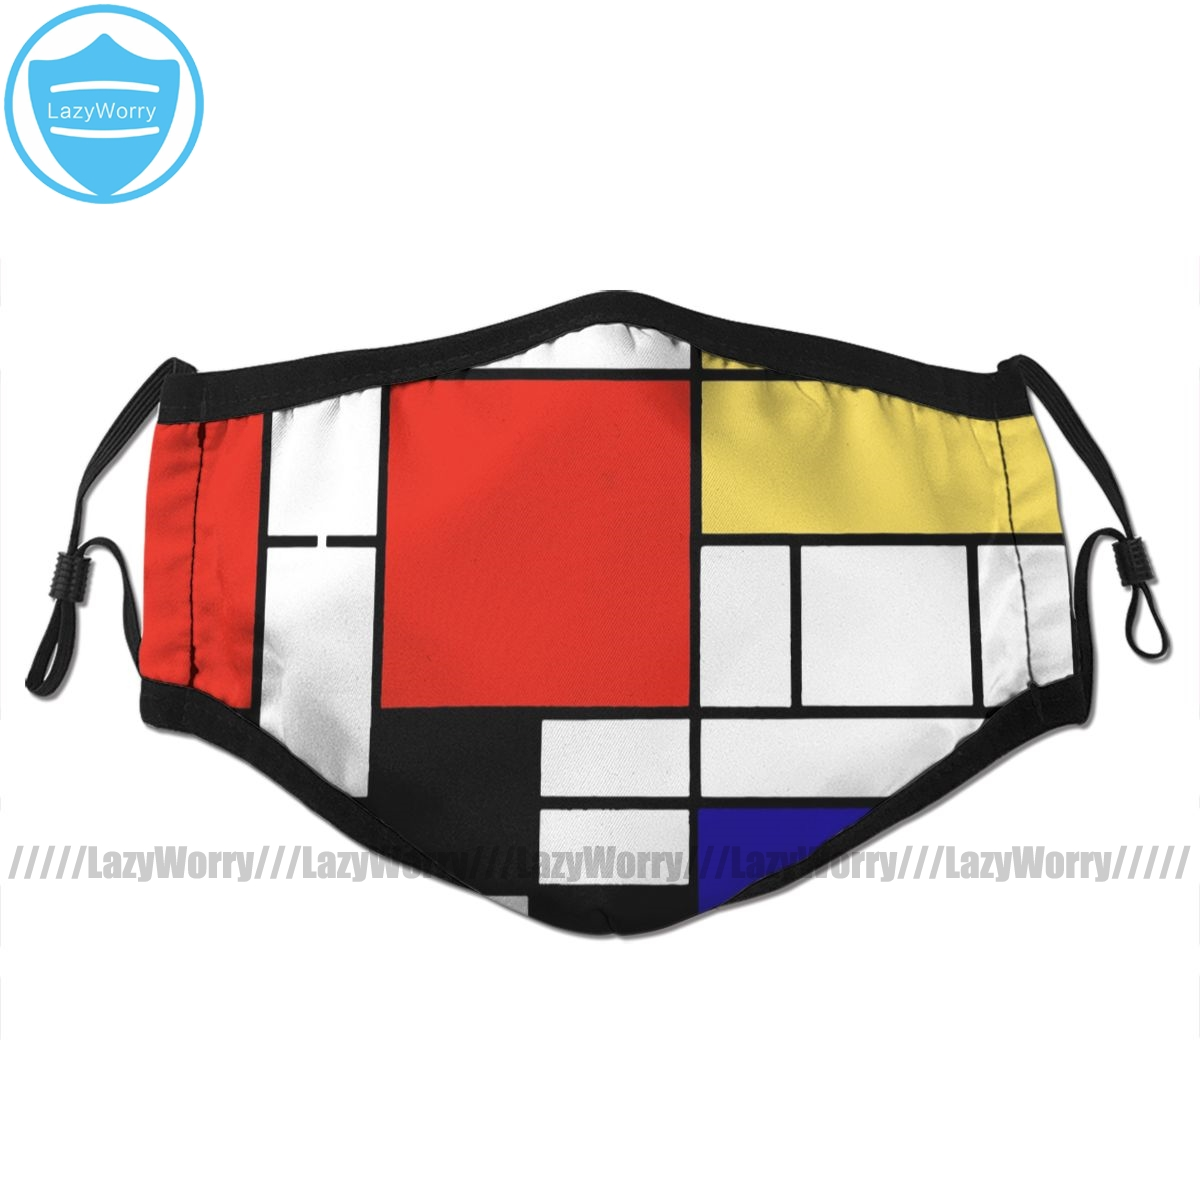 Geometric Mouth Face Mask Mondrian Facial Mask Kawai Cool With 2 Filters For Adult